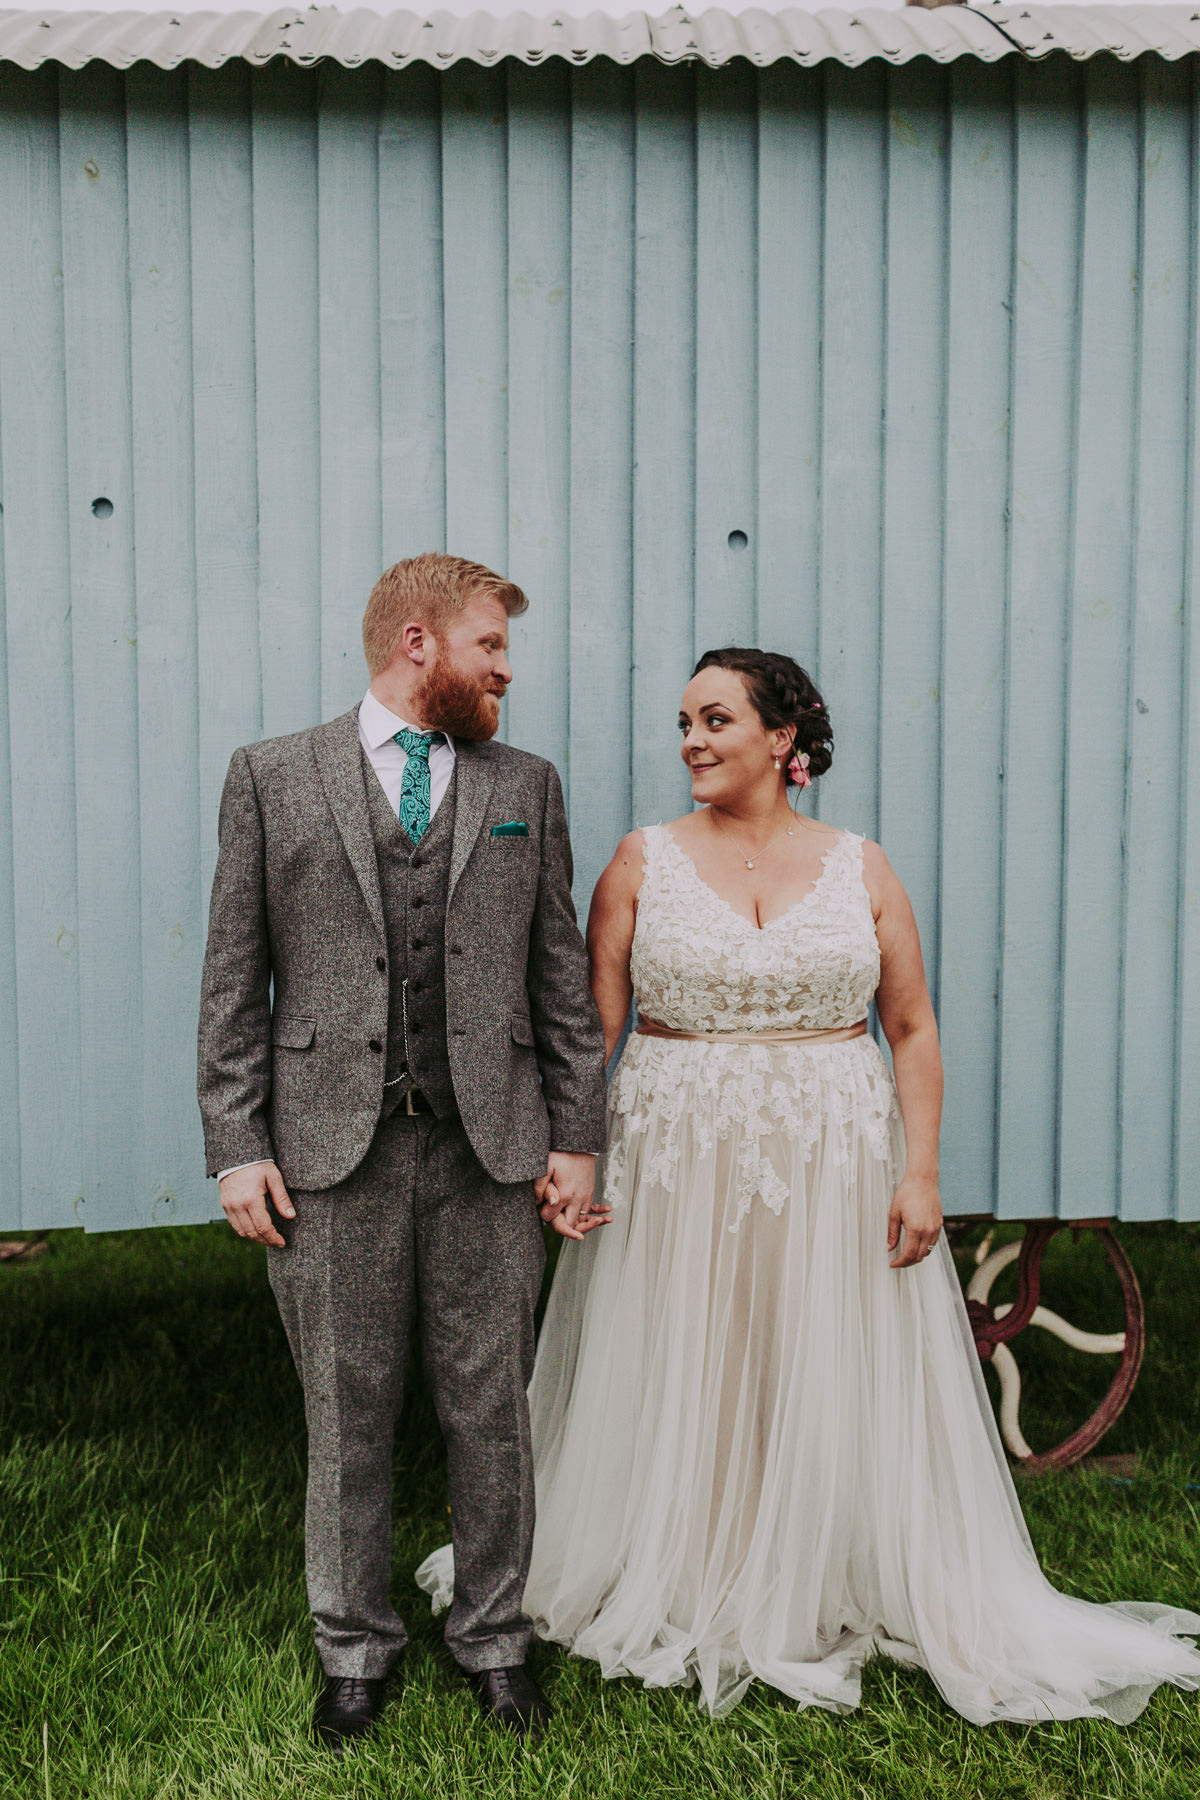 Skipbridge Farm Wedding